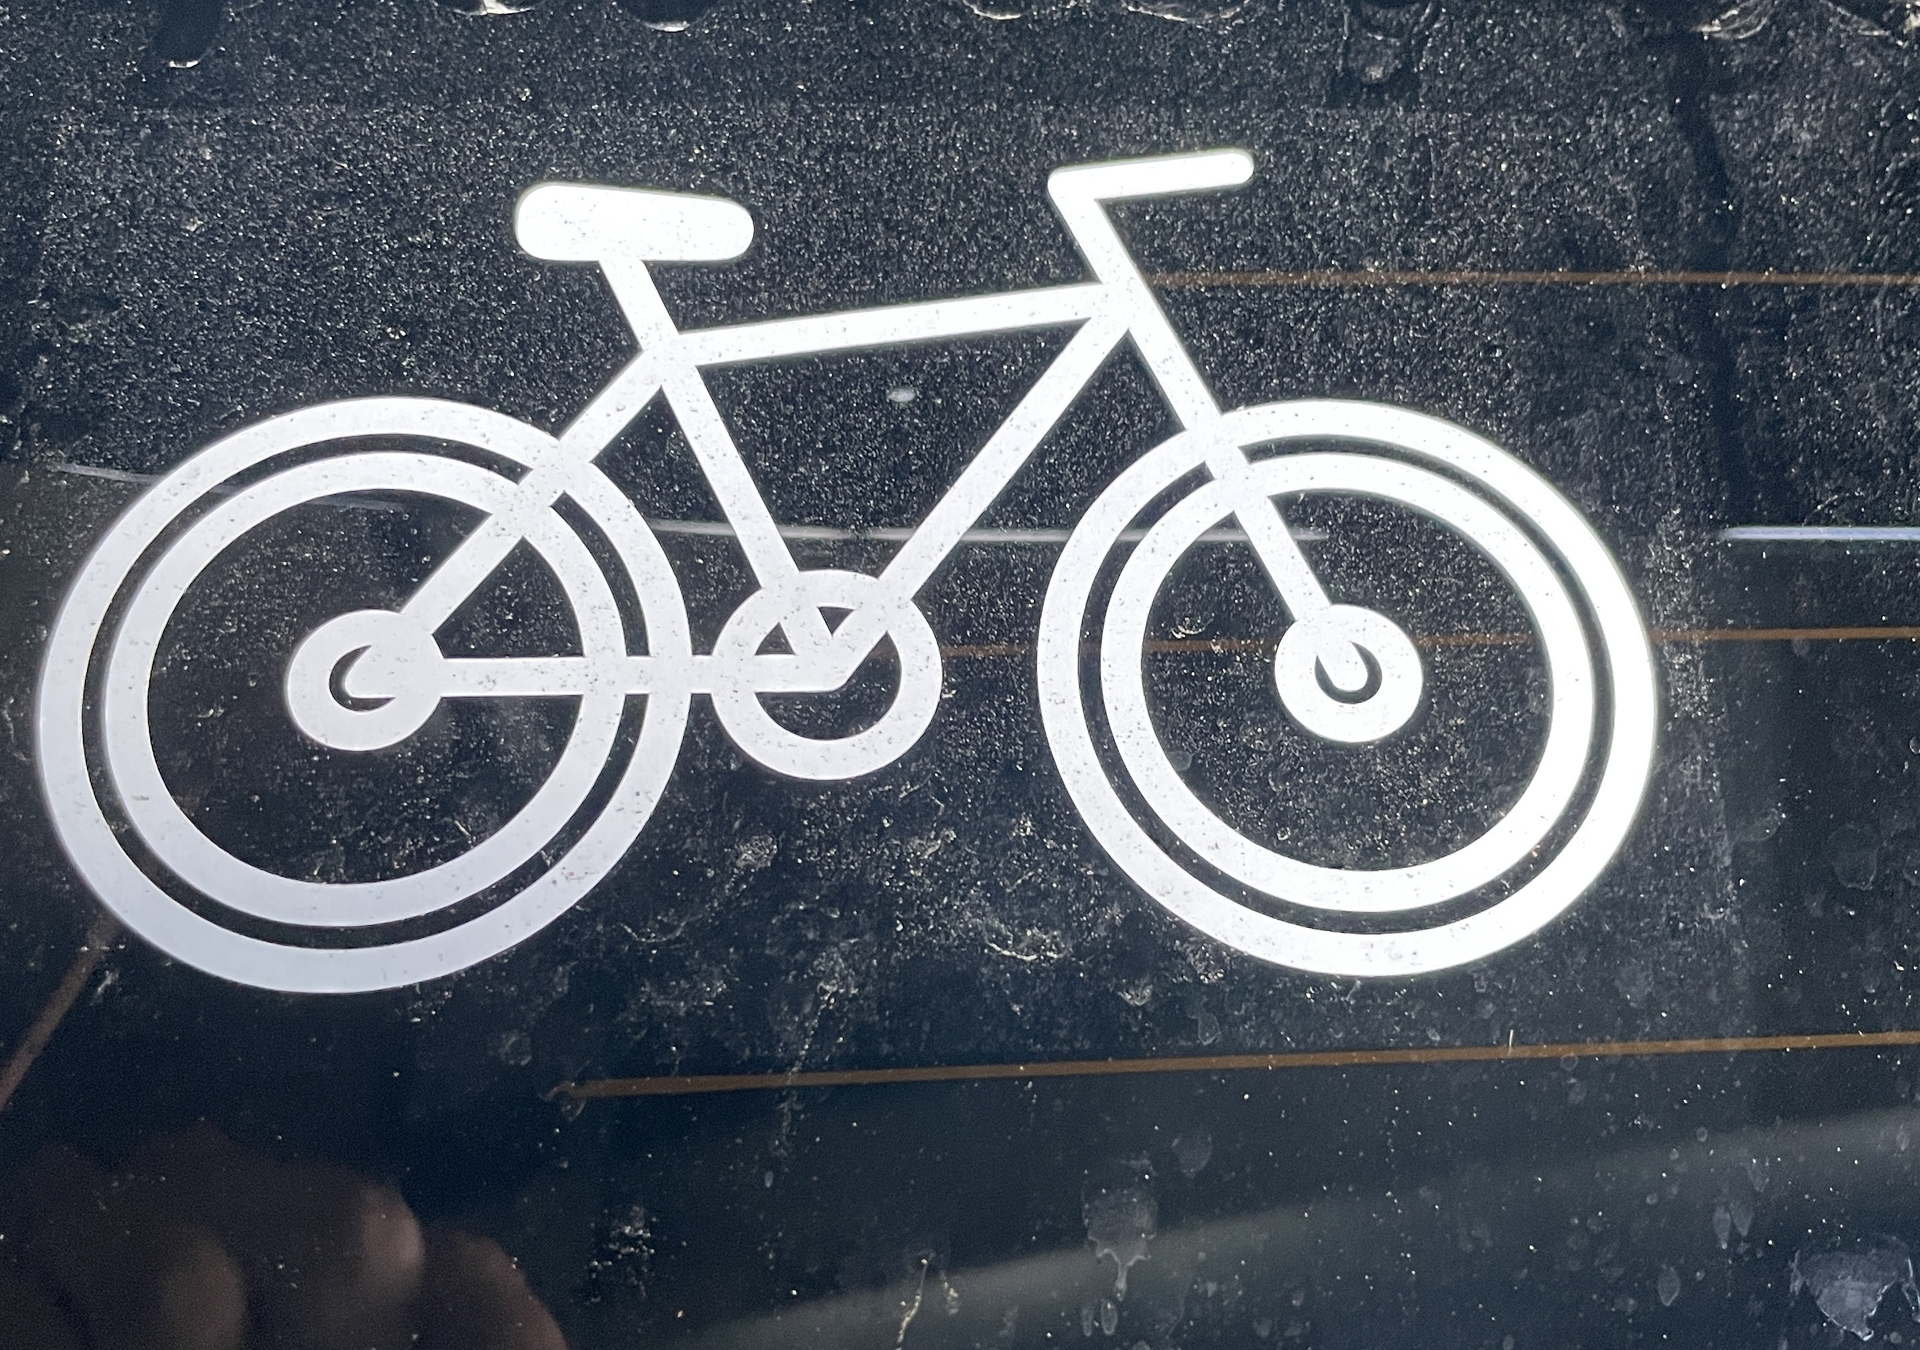 Natalia's photograph of their One Color Bike Camping Sticker